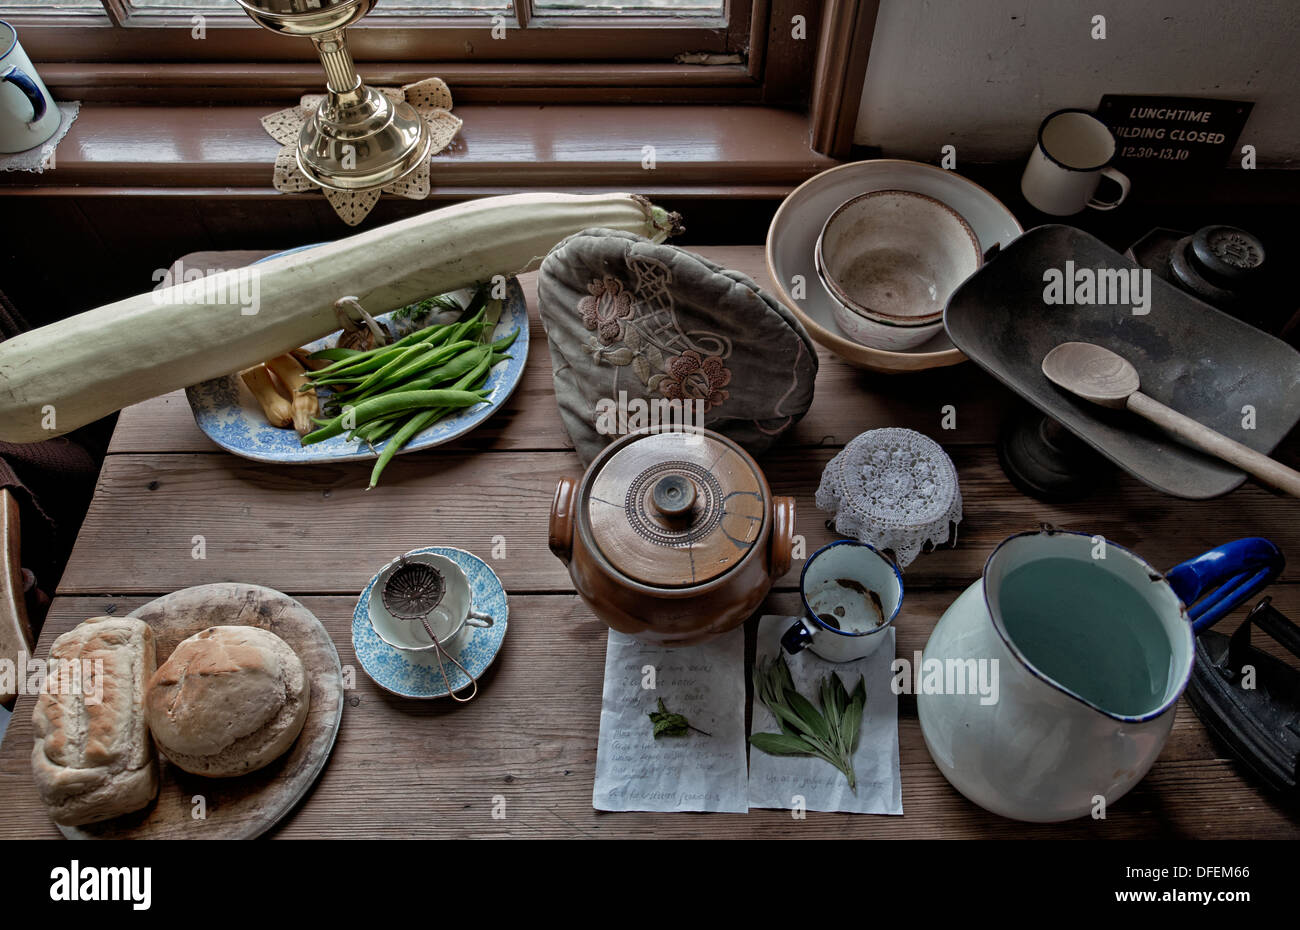 Table layout featuring traditional 1800's/early 1900's food and